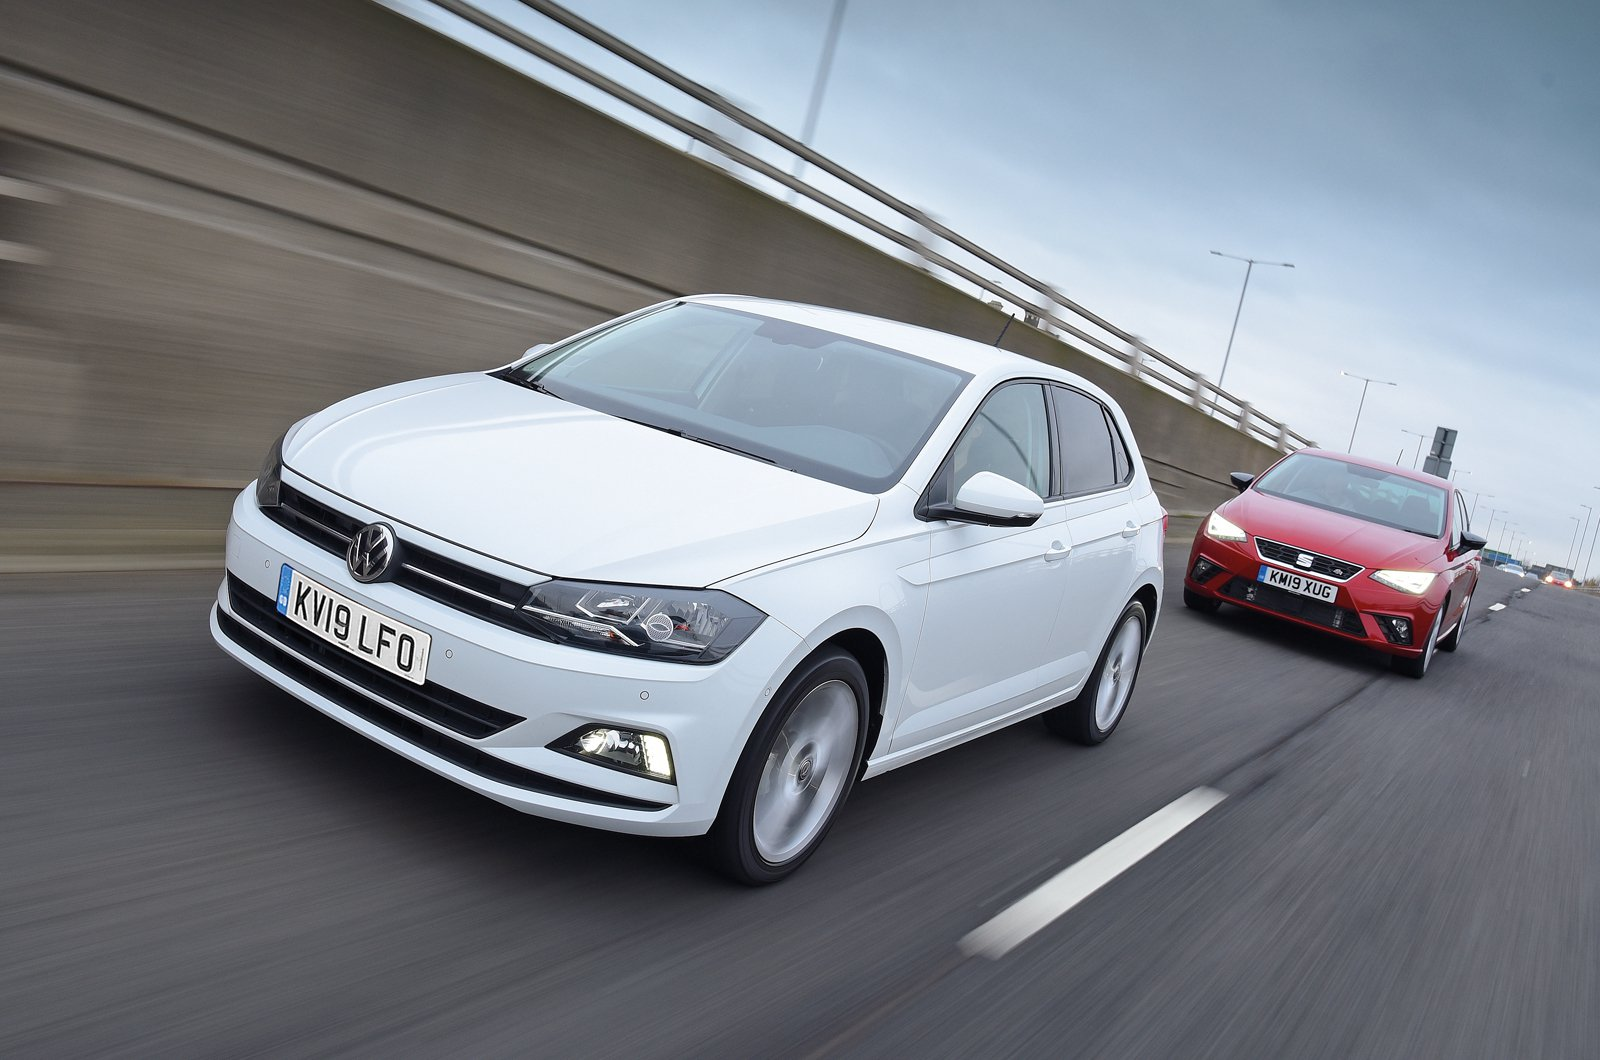 Volkswagen Polo leading Seat Ibiza - 19-plate cars